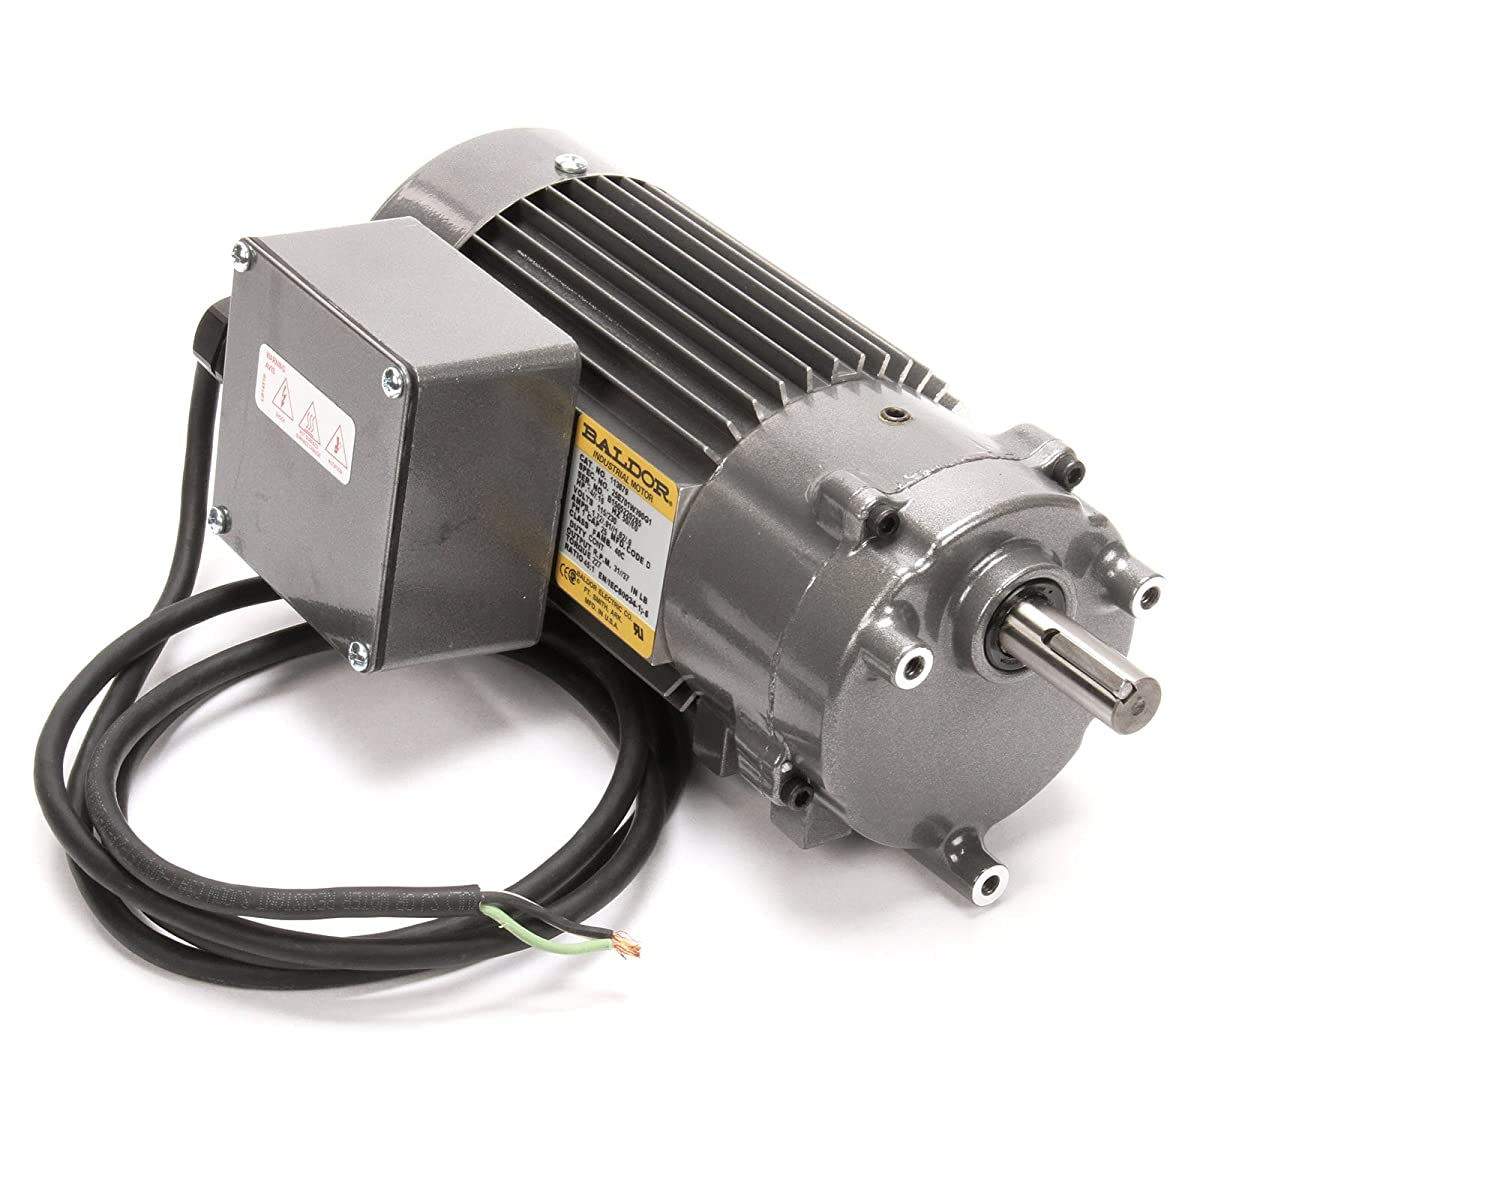 "Champion - Moyer Diebel 113679 Gear Motor, 1/6 hp, 115-240V/1Ph, 17"" Height, 11"" Width, 8"" Length 71NdirnT-ZL._SL1500_"